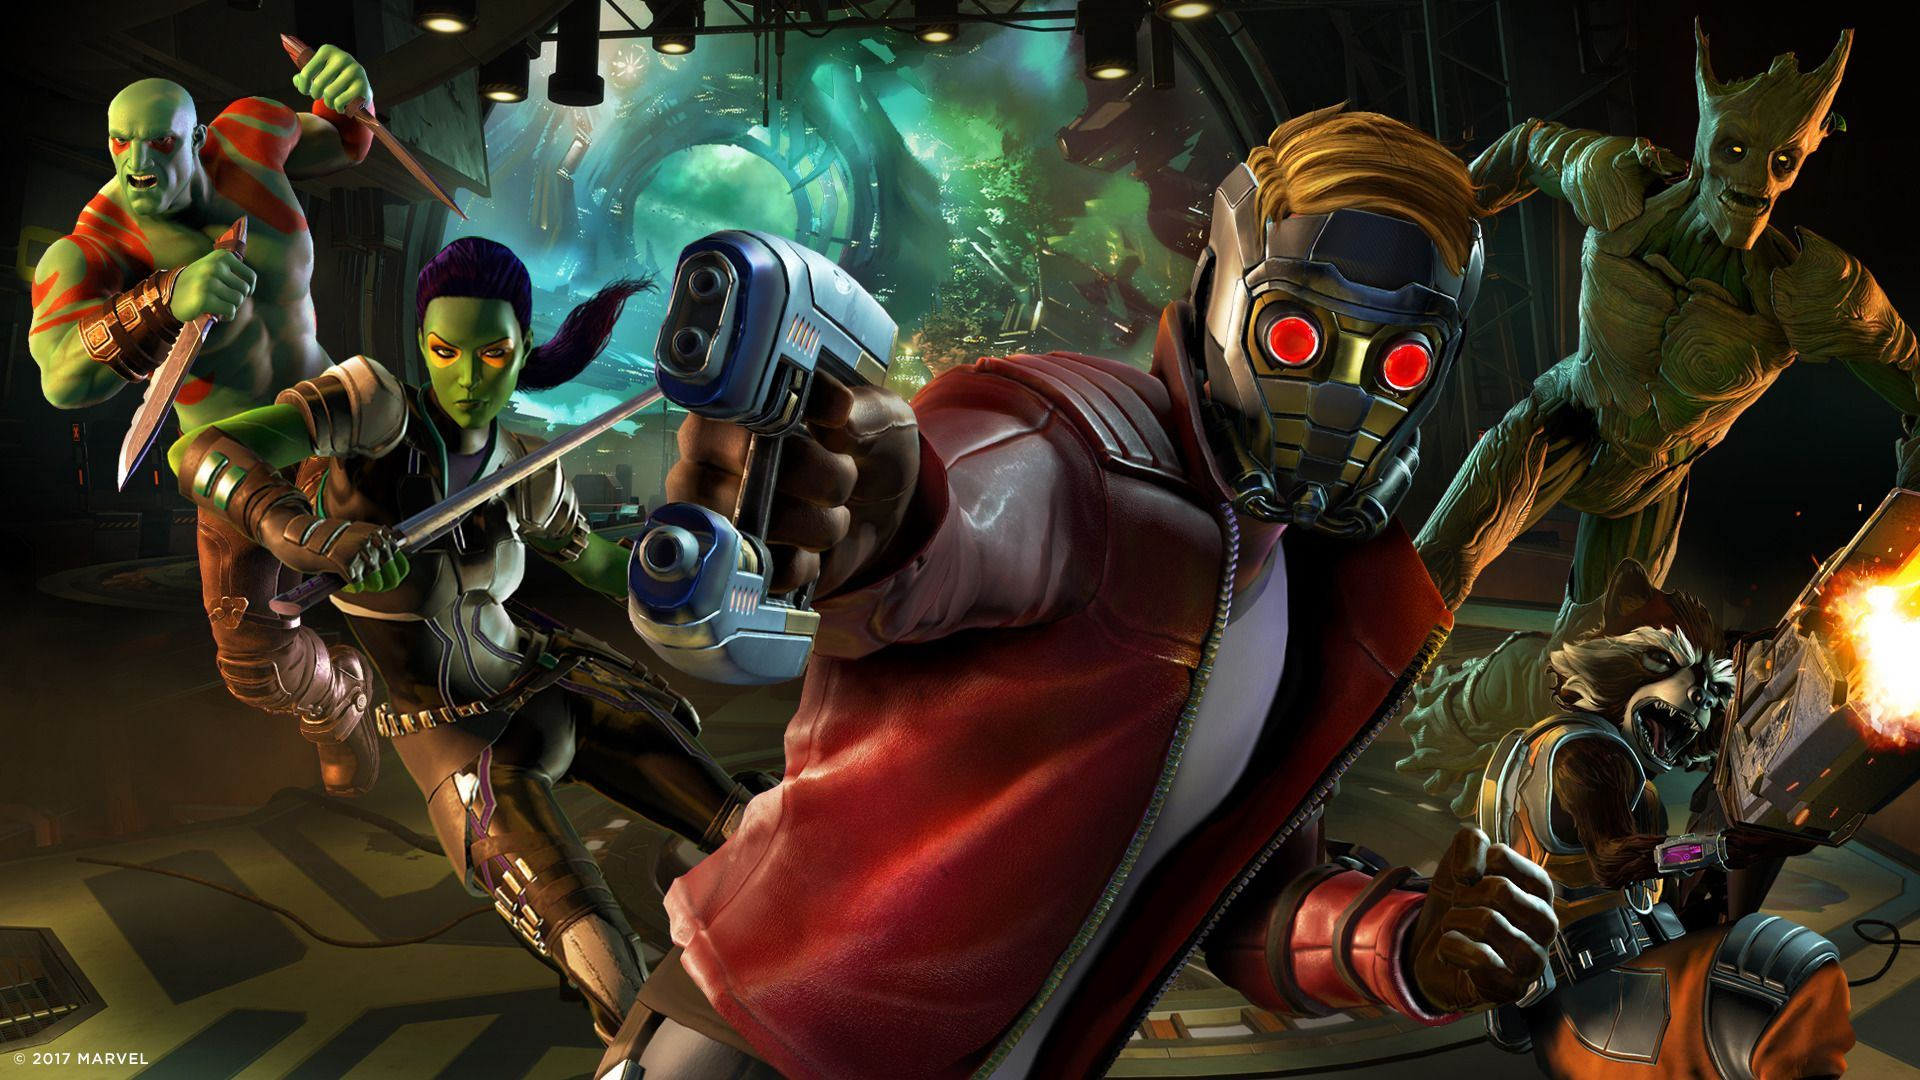 Guardians Of The Galaxy The Telltale Series First Episode